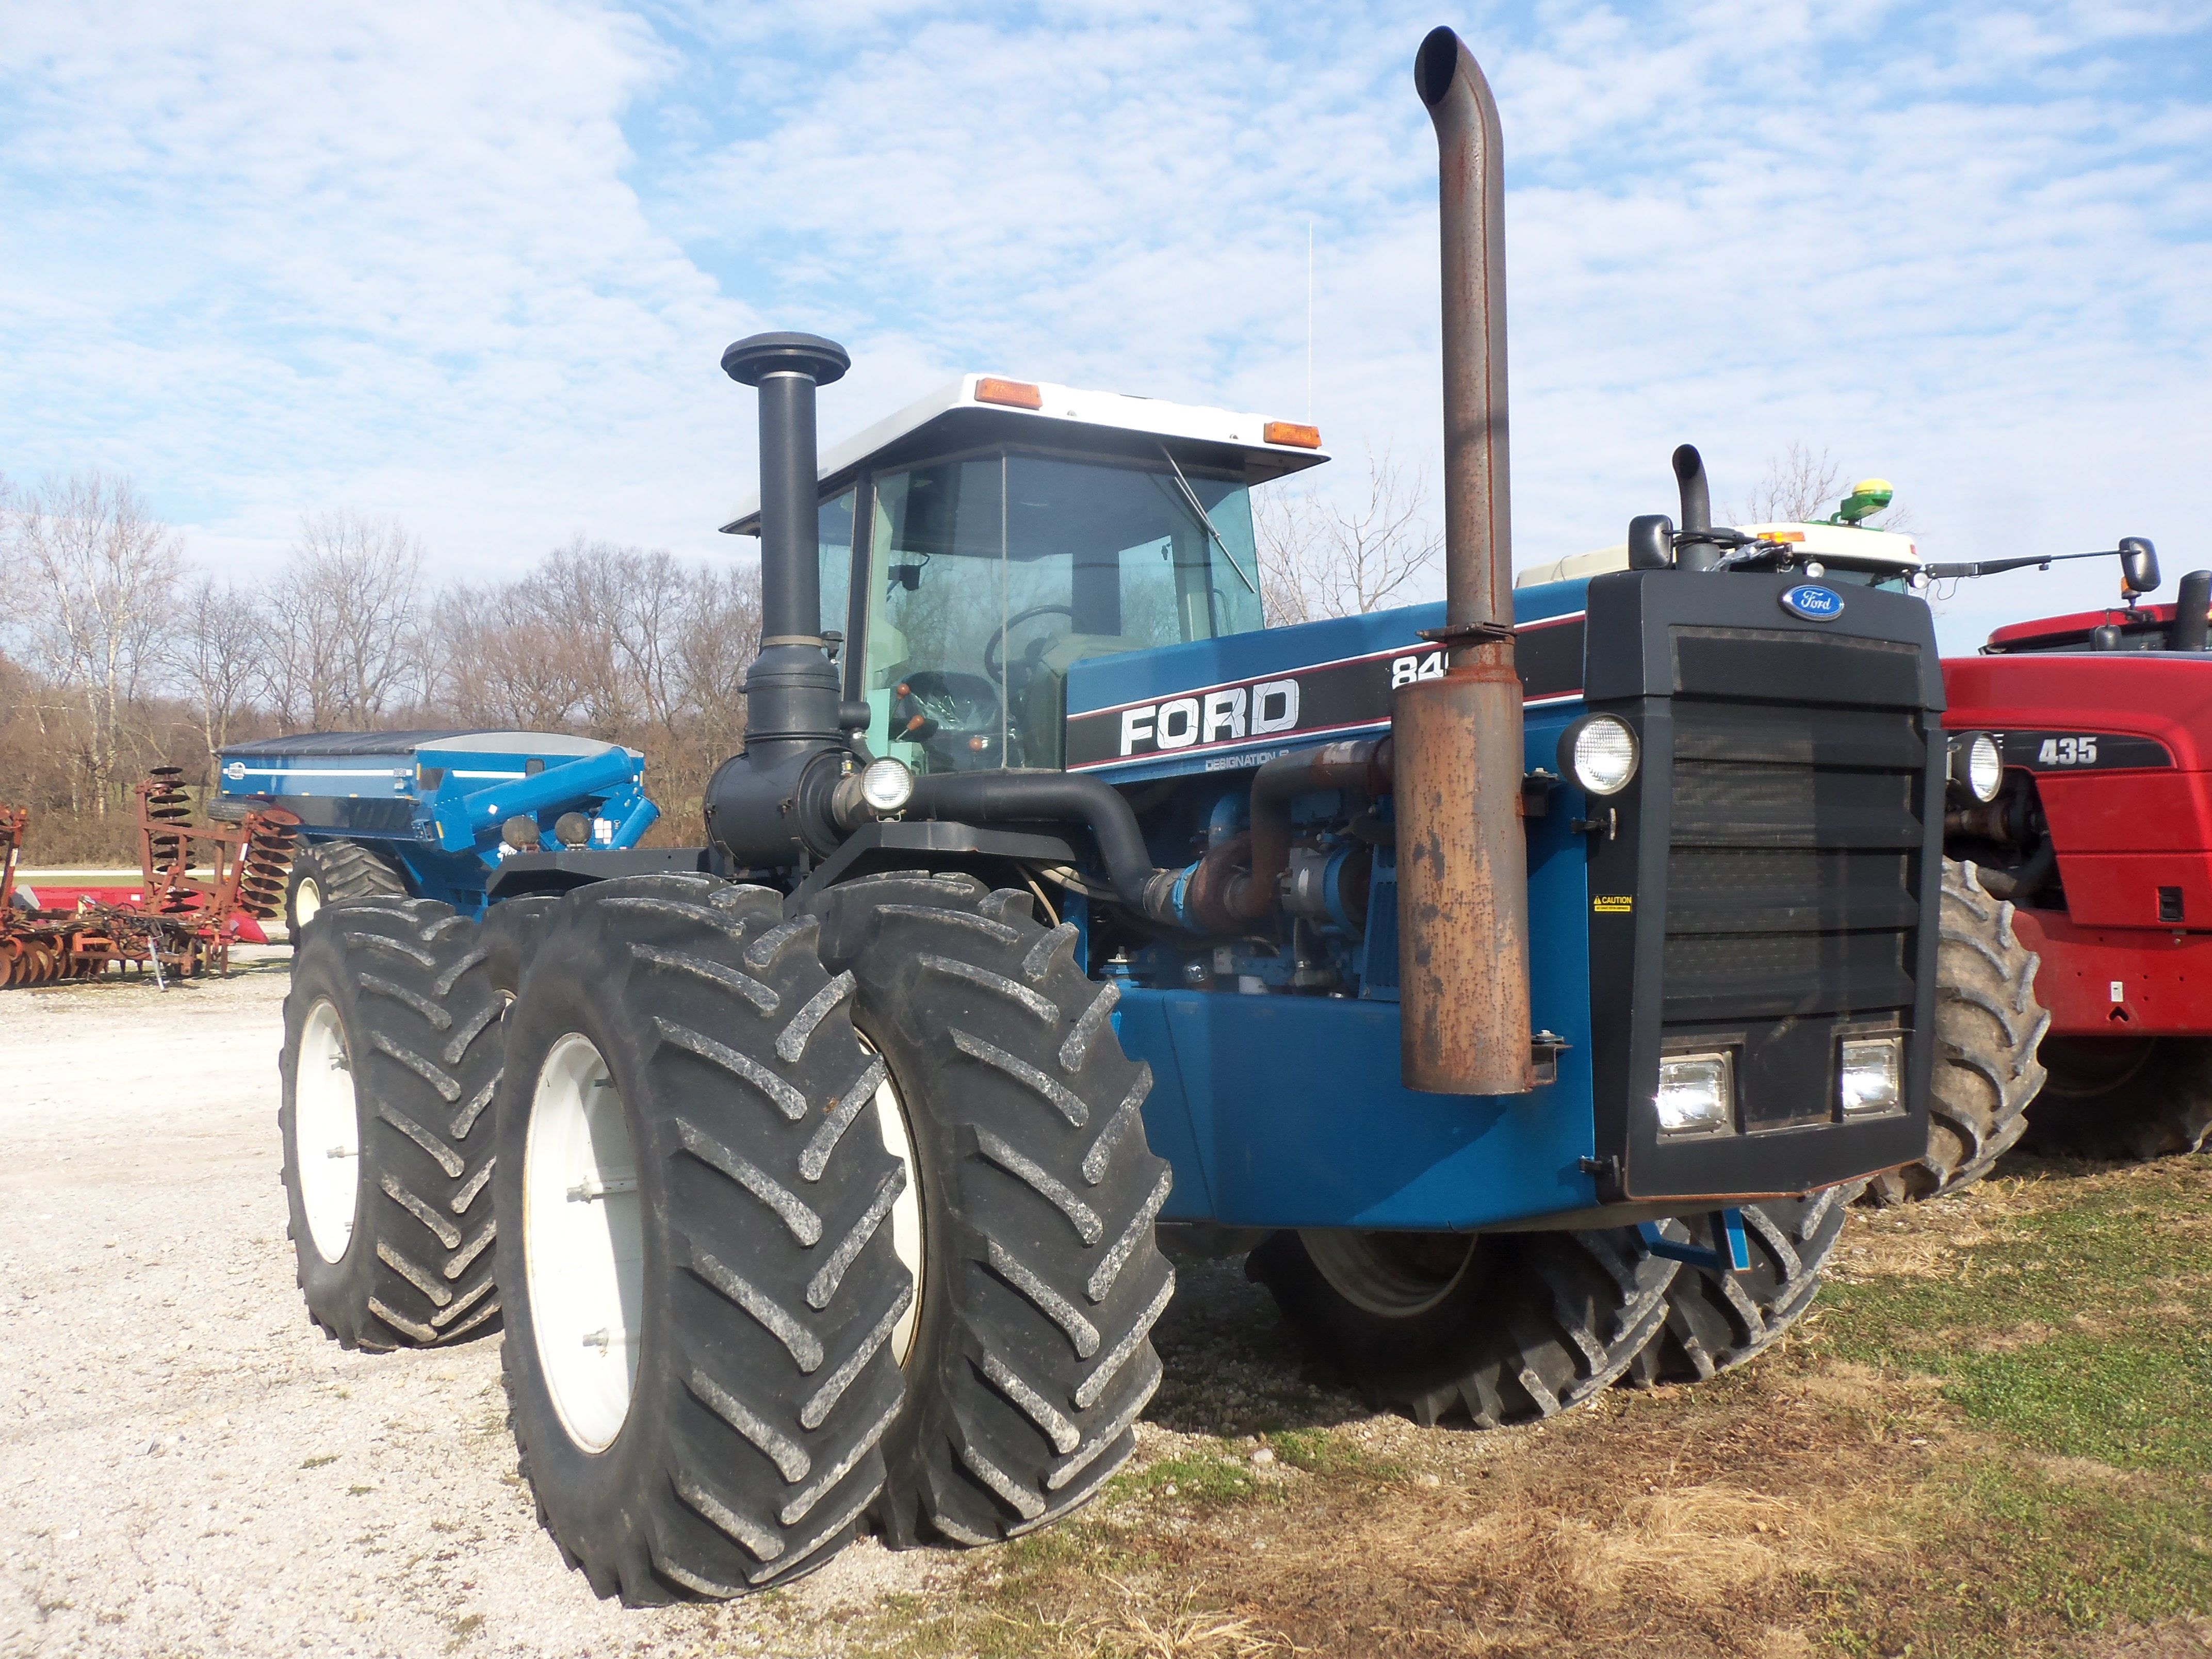 Ford Versatile 846 Tractors Ford Tractors New Holland Tractor